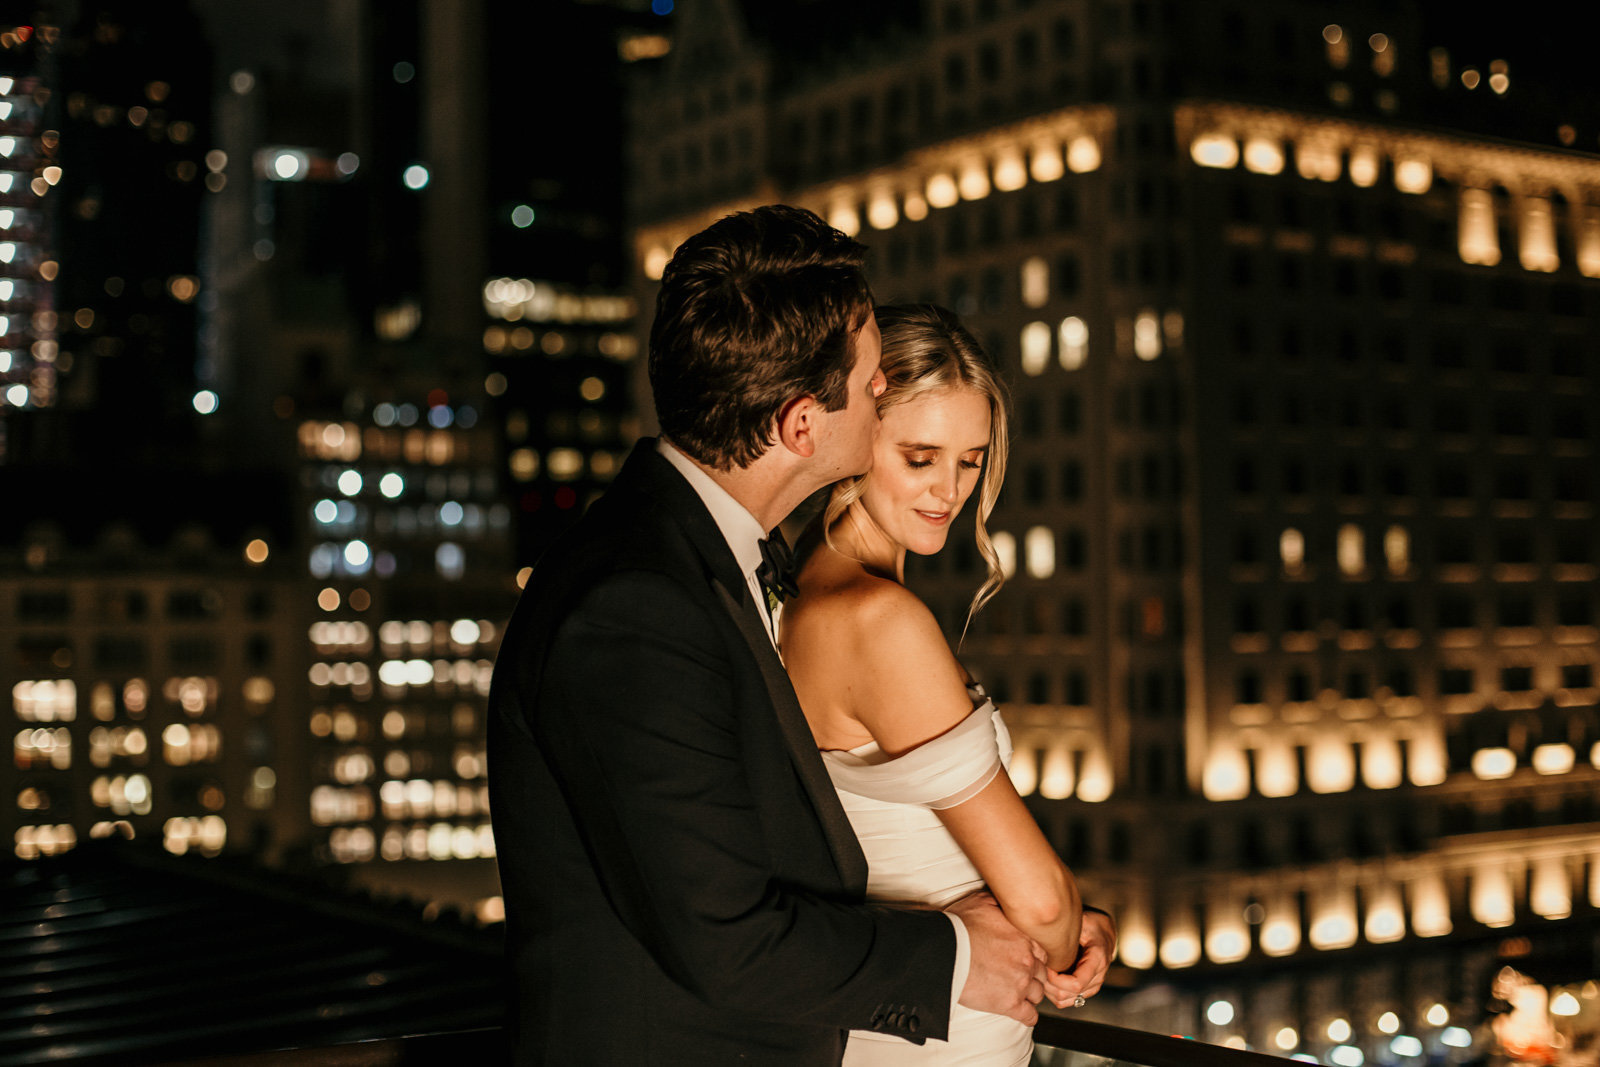 Bride and groom embrace on a rooftop in New York City.